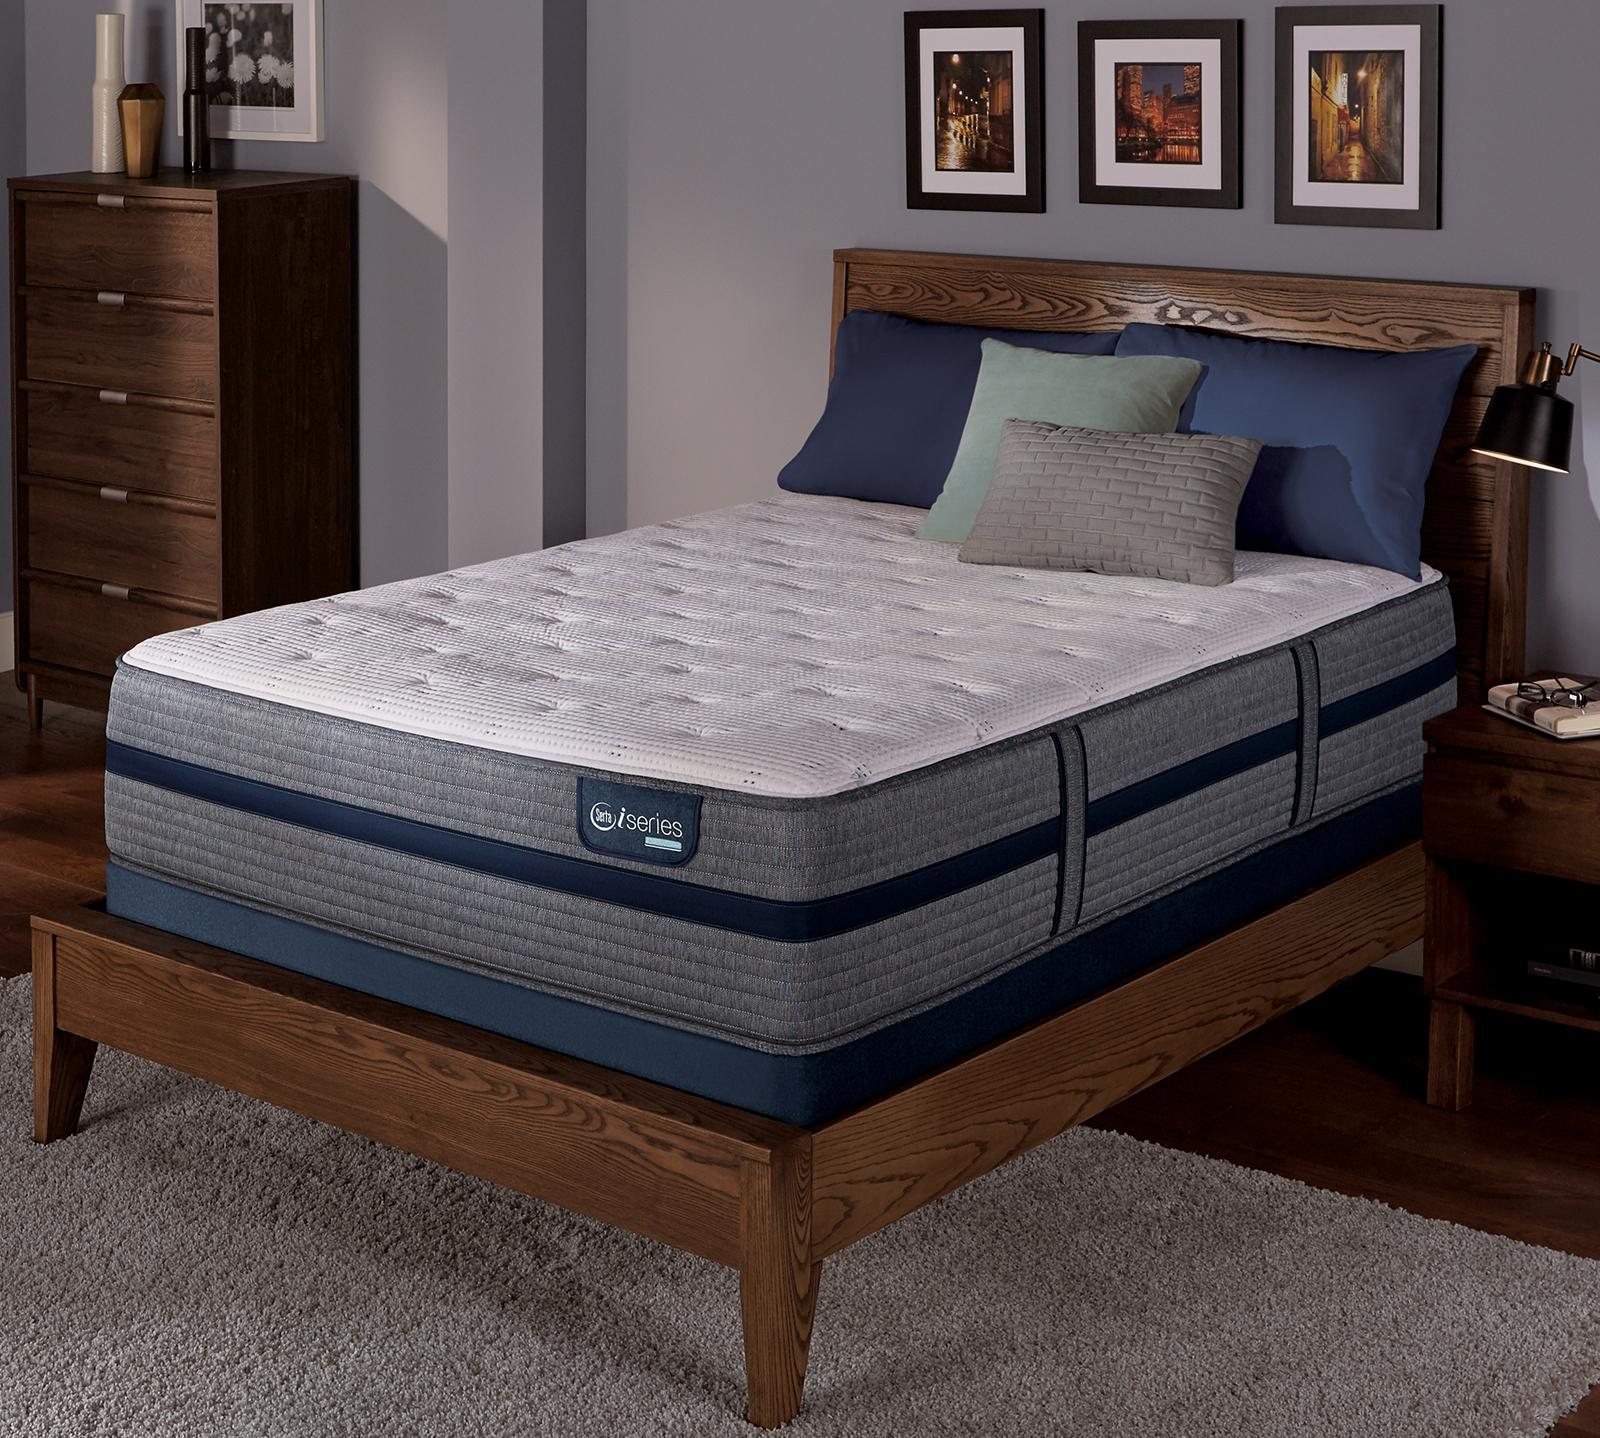 iSeries Hybrid 300 13.5 Inch Plush Mattress